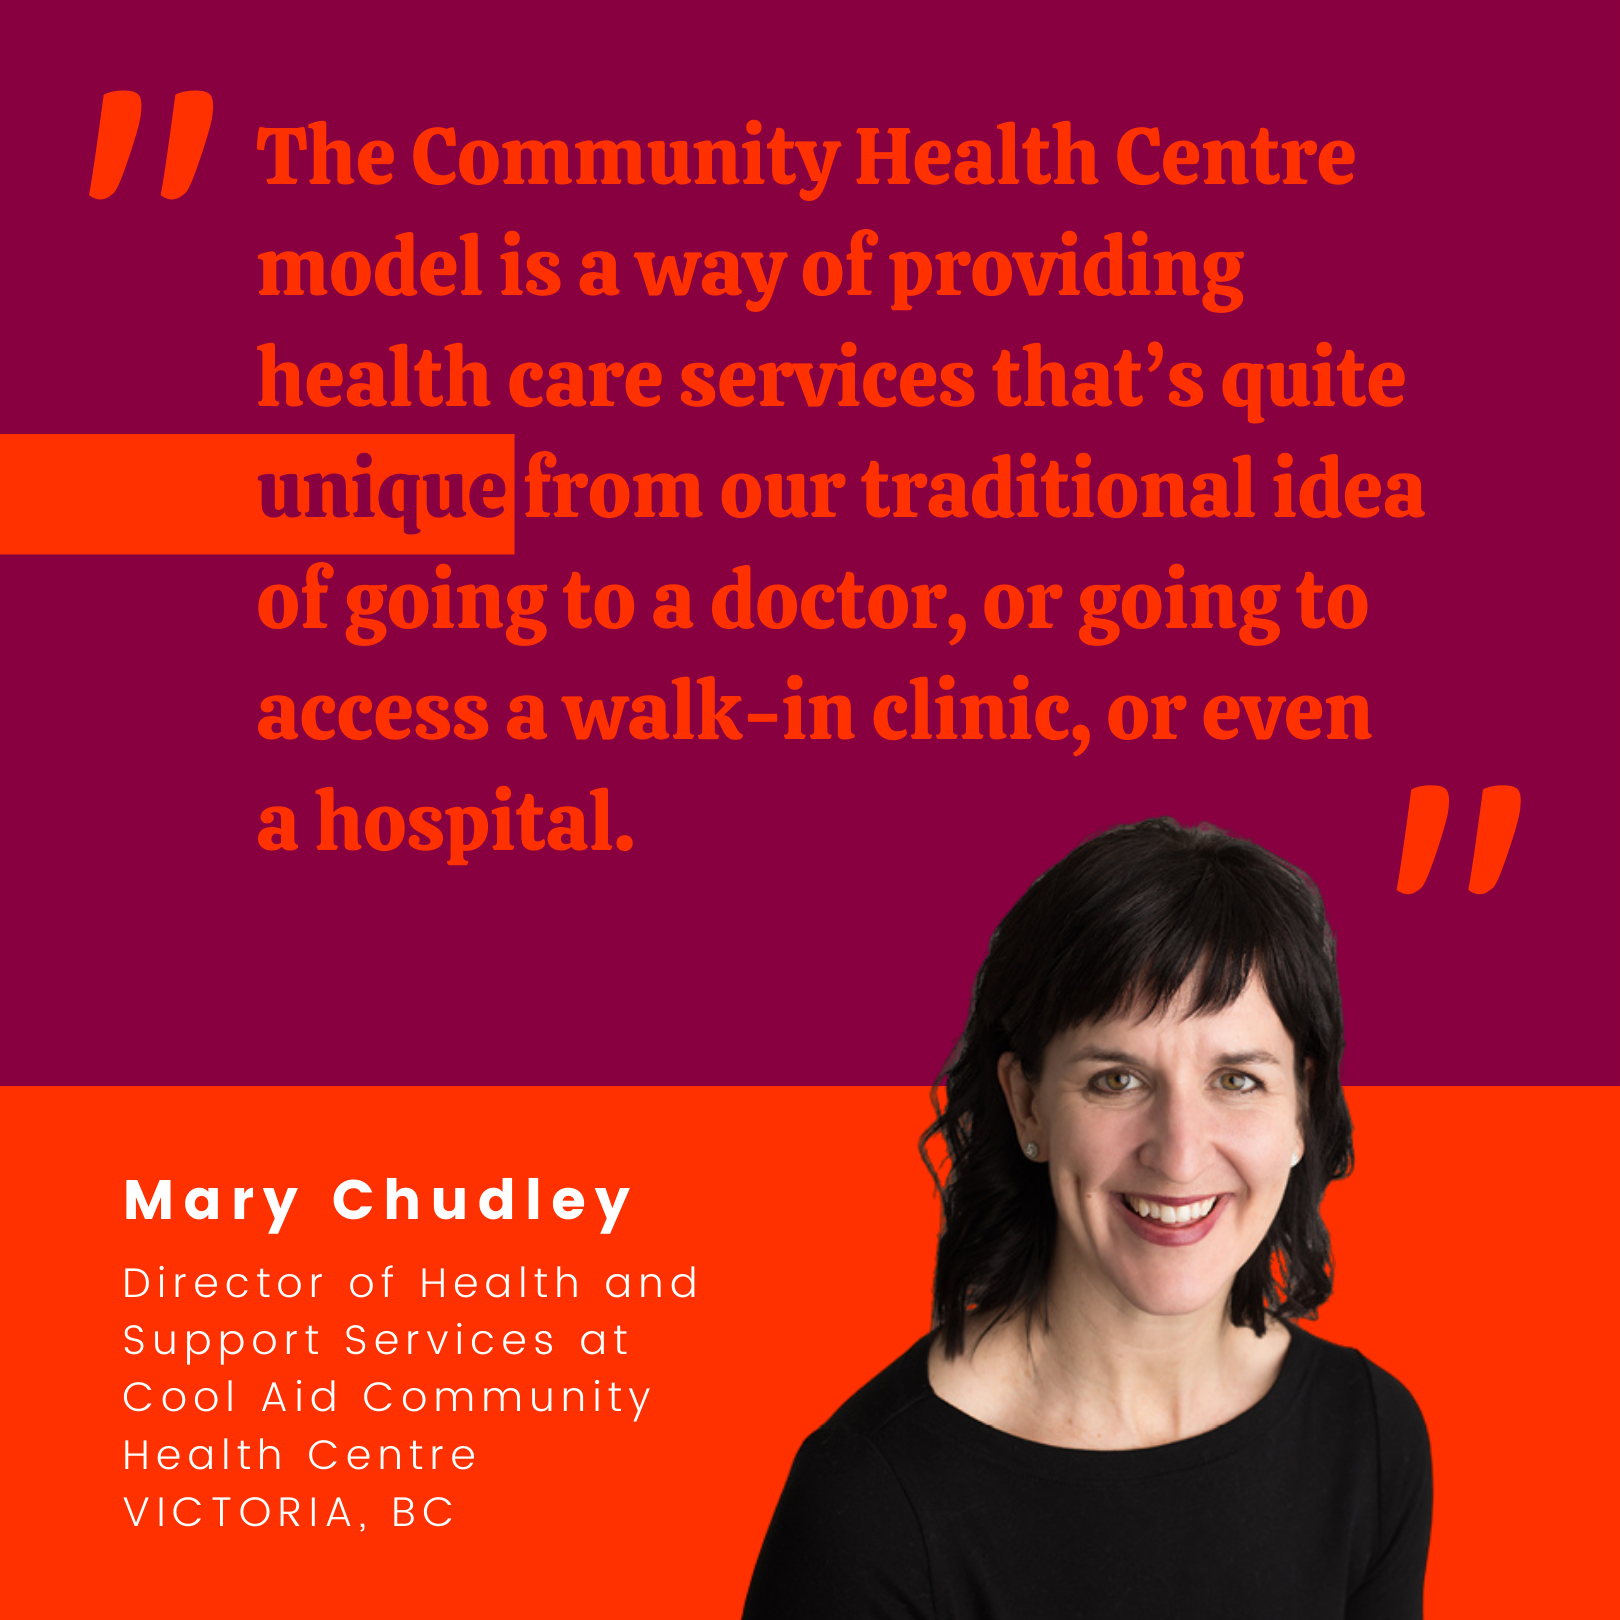 """A quote from Mary Chudley, who is featured in the blog, reading """"The Community Health Centre model is a way of providing health care services that's quite unique from our traditional idea of going to a doctor, or going to access a walk-in clinic, or even a hospital."""